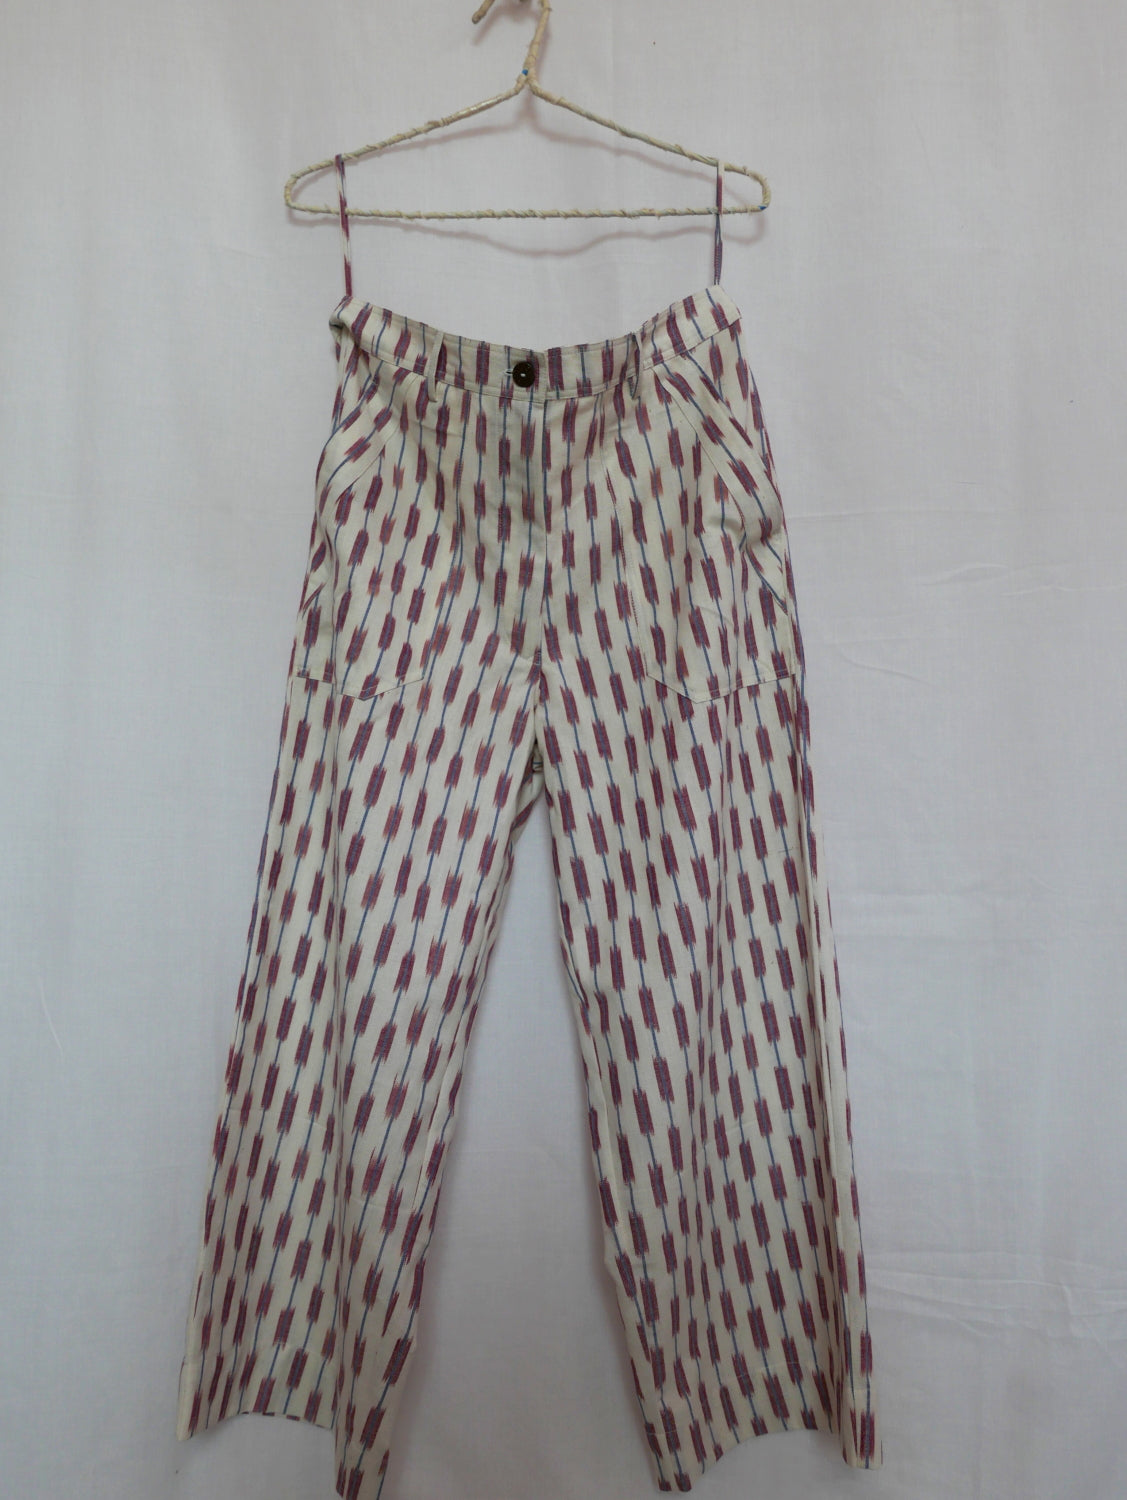 Mimosa Wide Hemmed Ikat Pants - ONLY 1 LEFT!